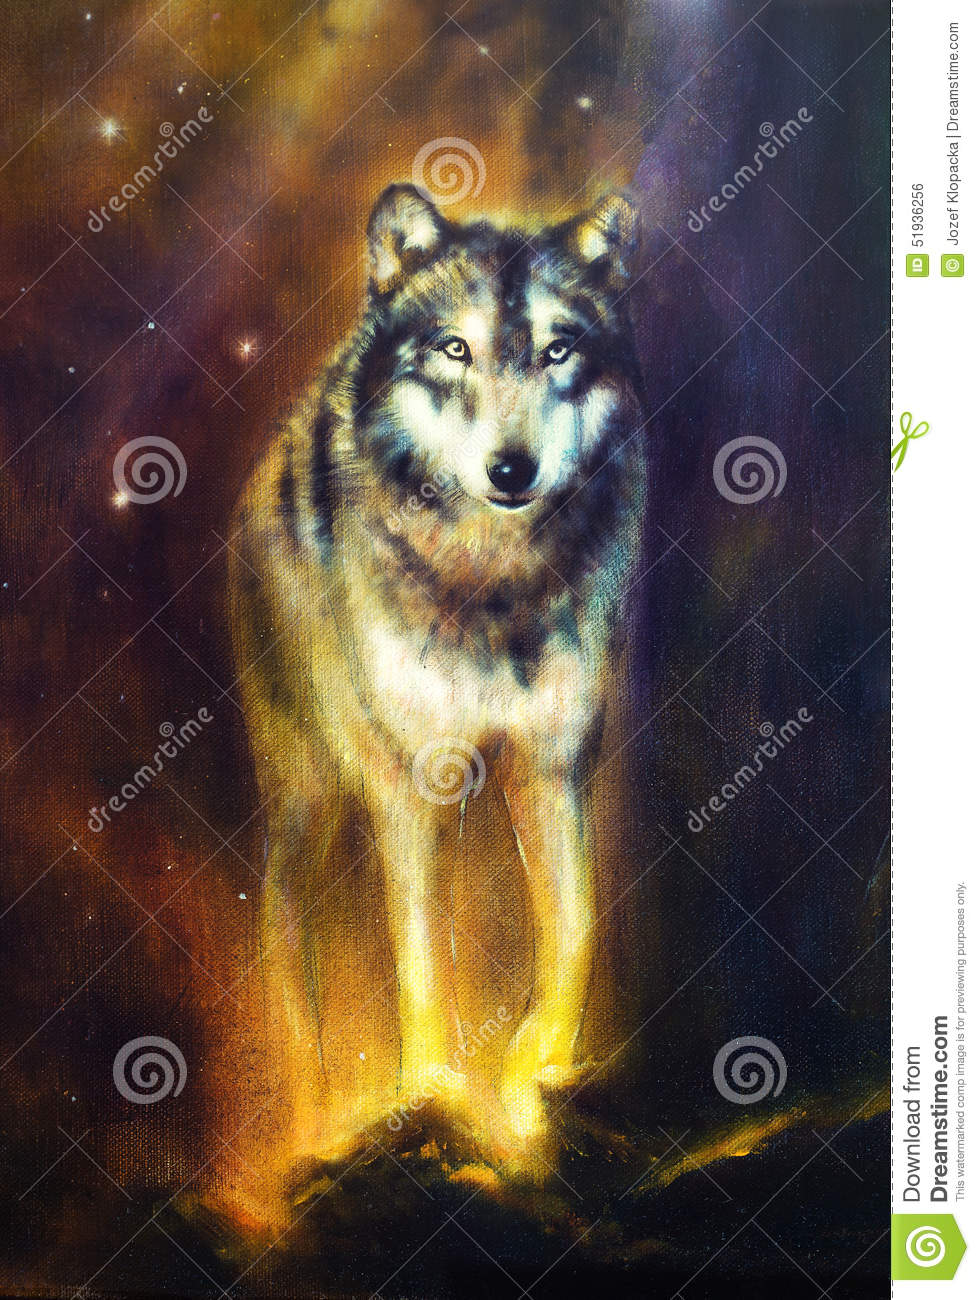 Wolf portrait, mighty cosmical wolf walking from light, beautiful detailed oil painting on canvas.